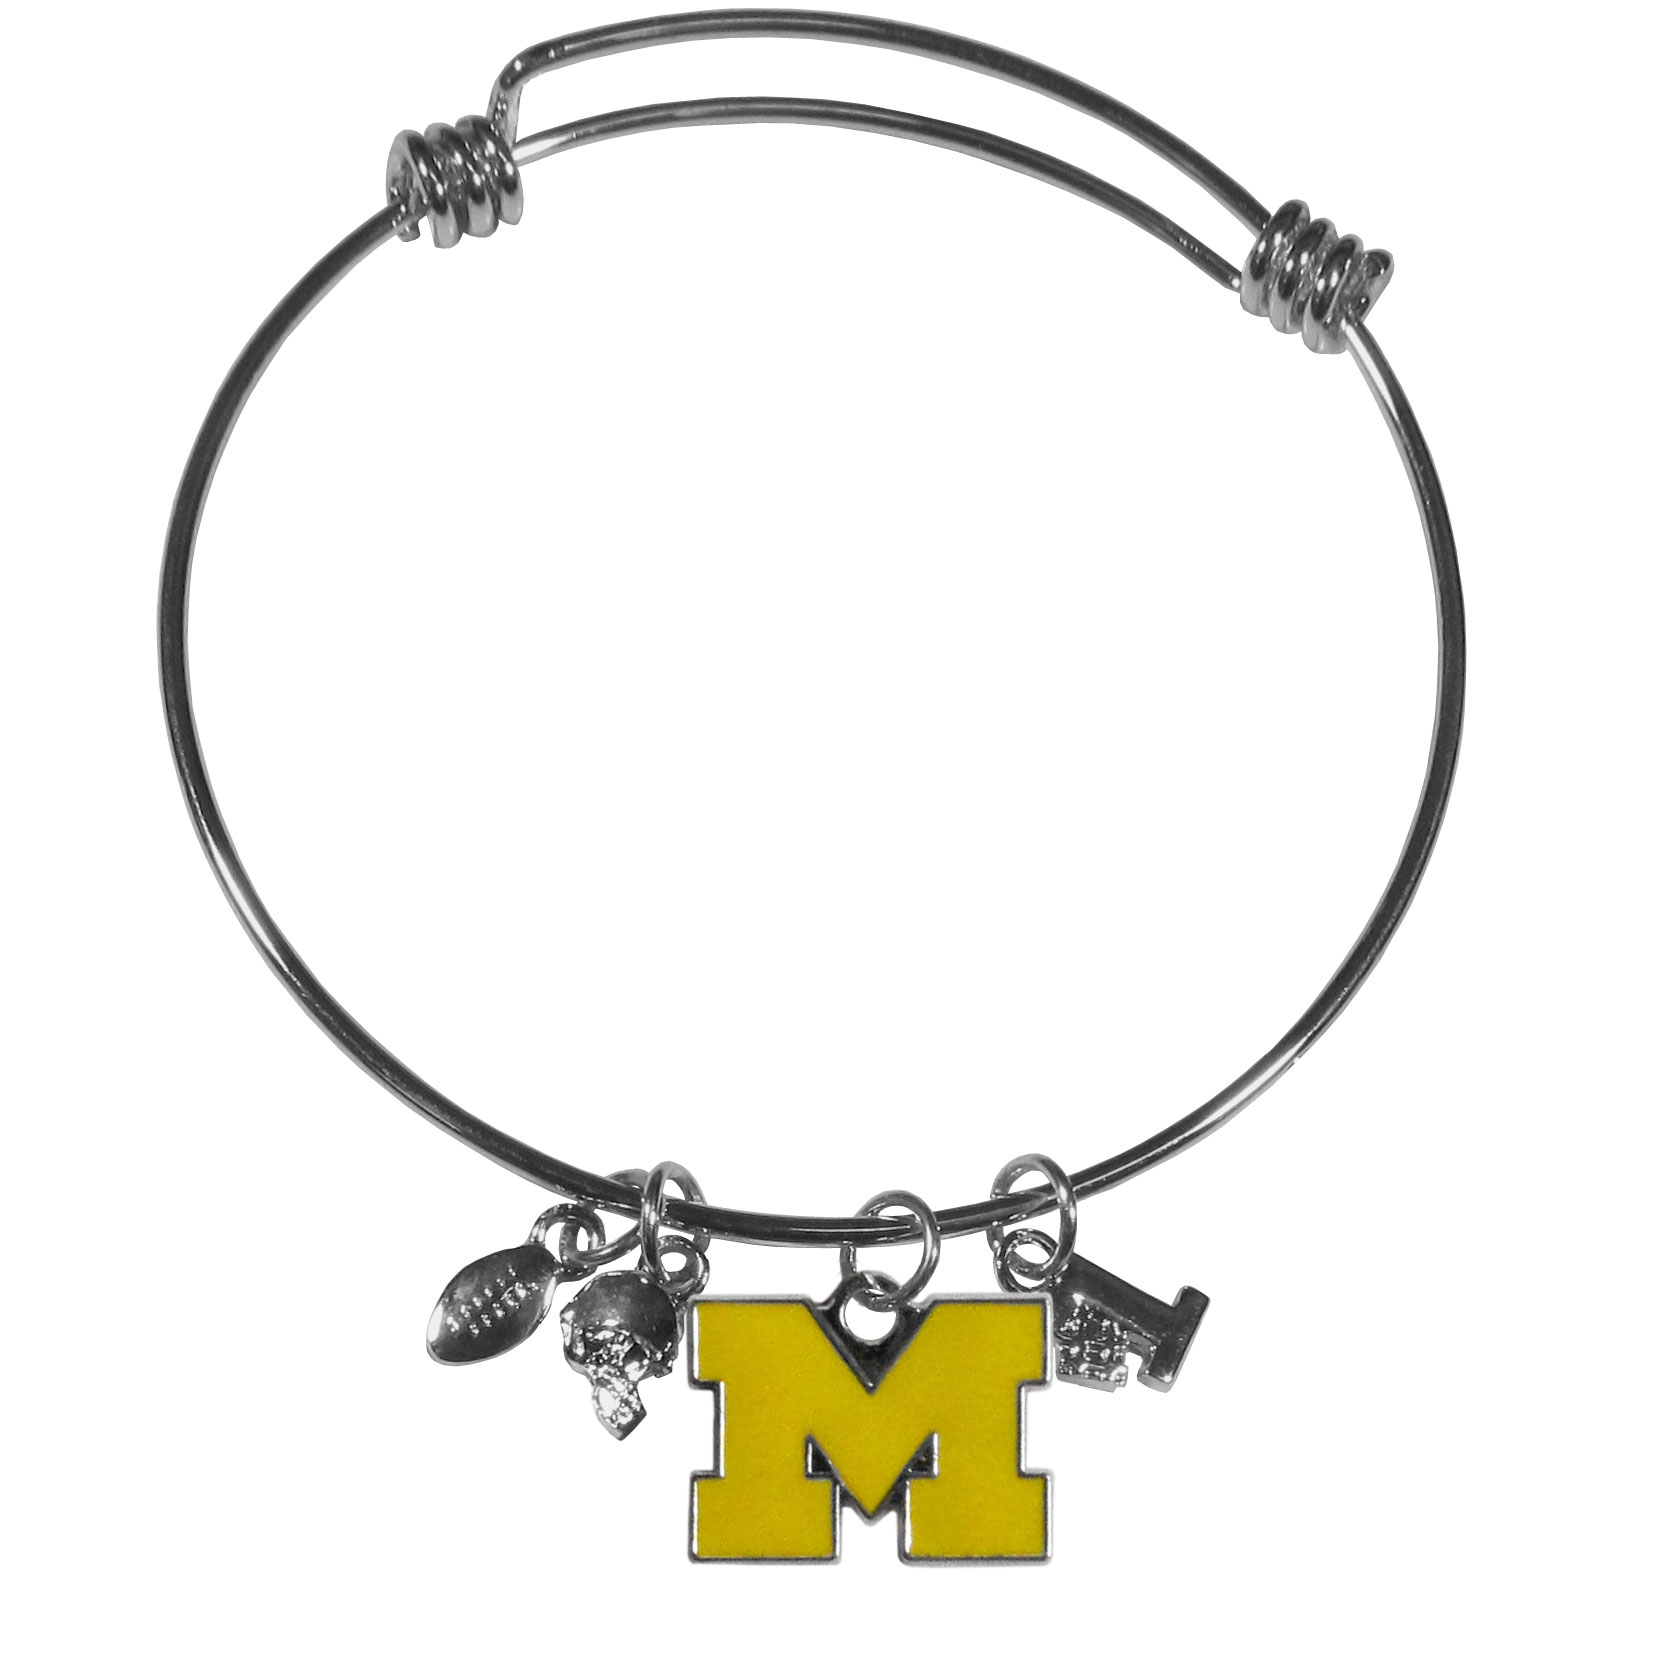 Michigan Wolverines Charm Bangle Bracelet - Adjustable wire bracelets are all the rage and this Michigan Wolverines bracelet matches the popular trend with your beloved team. The bracelet features 4 charms in total, each feature exceptional detail and the team charm has enameled team colors.